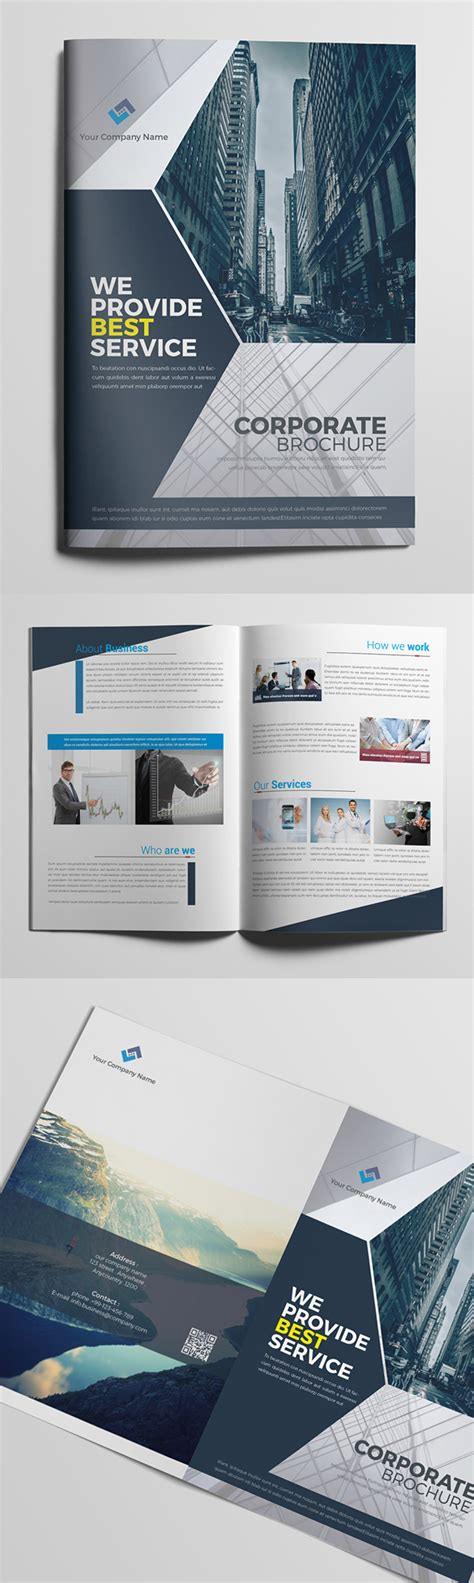 Corporate Brochure Design by New Catalog Brochure Design Templates Design Graphic